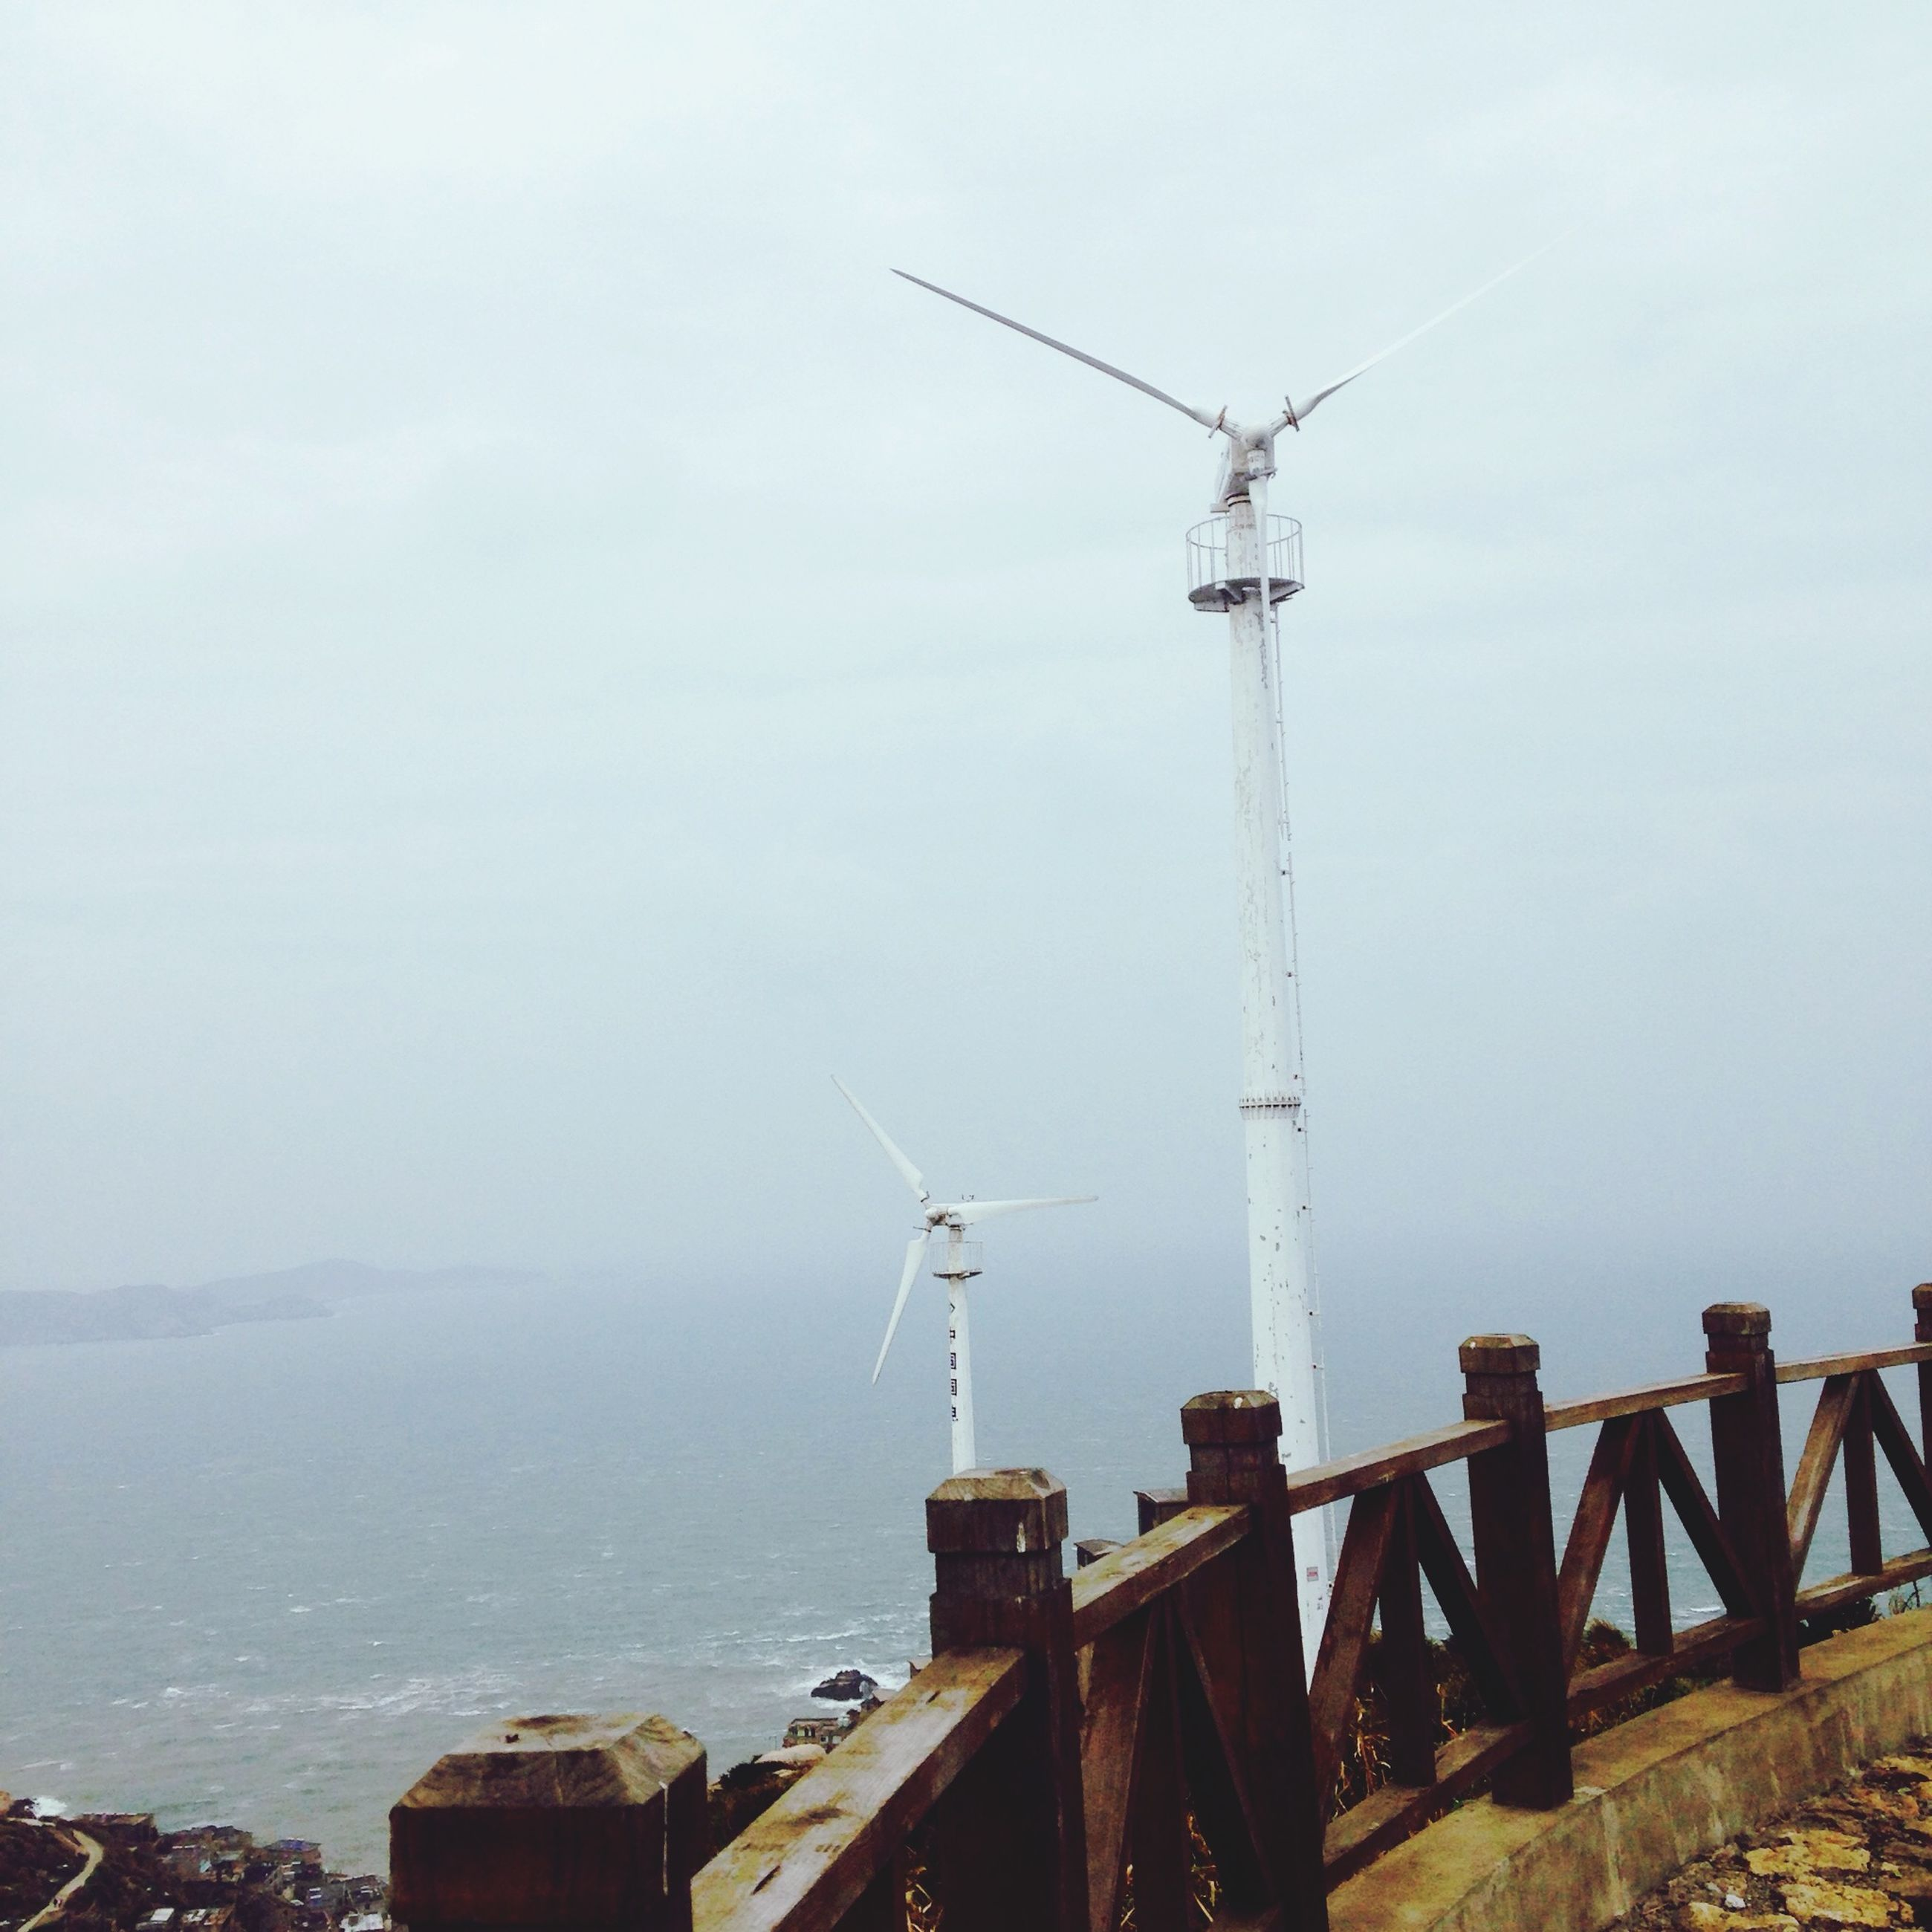 sea, water, renewable energy, fuel and power generation, wind turbine, sky, alternative energy, wind power, environmental conservation, crane - construction machinery, windmill, technology, built structure, day, industry, building exterior, nature, commercial dock, traditional windmill, architecture